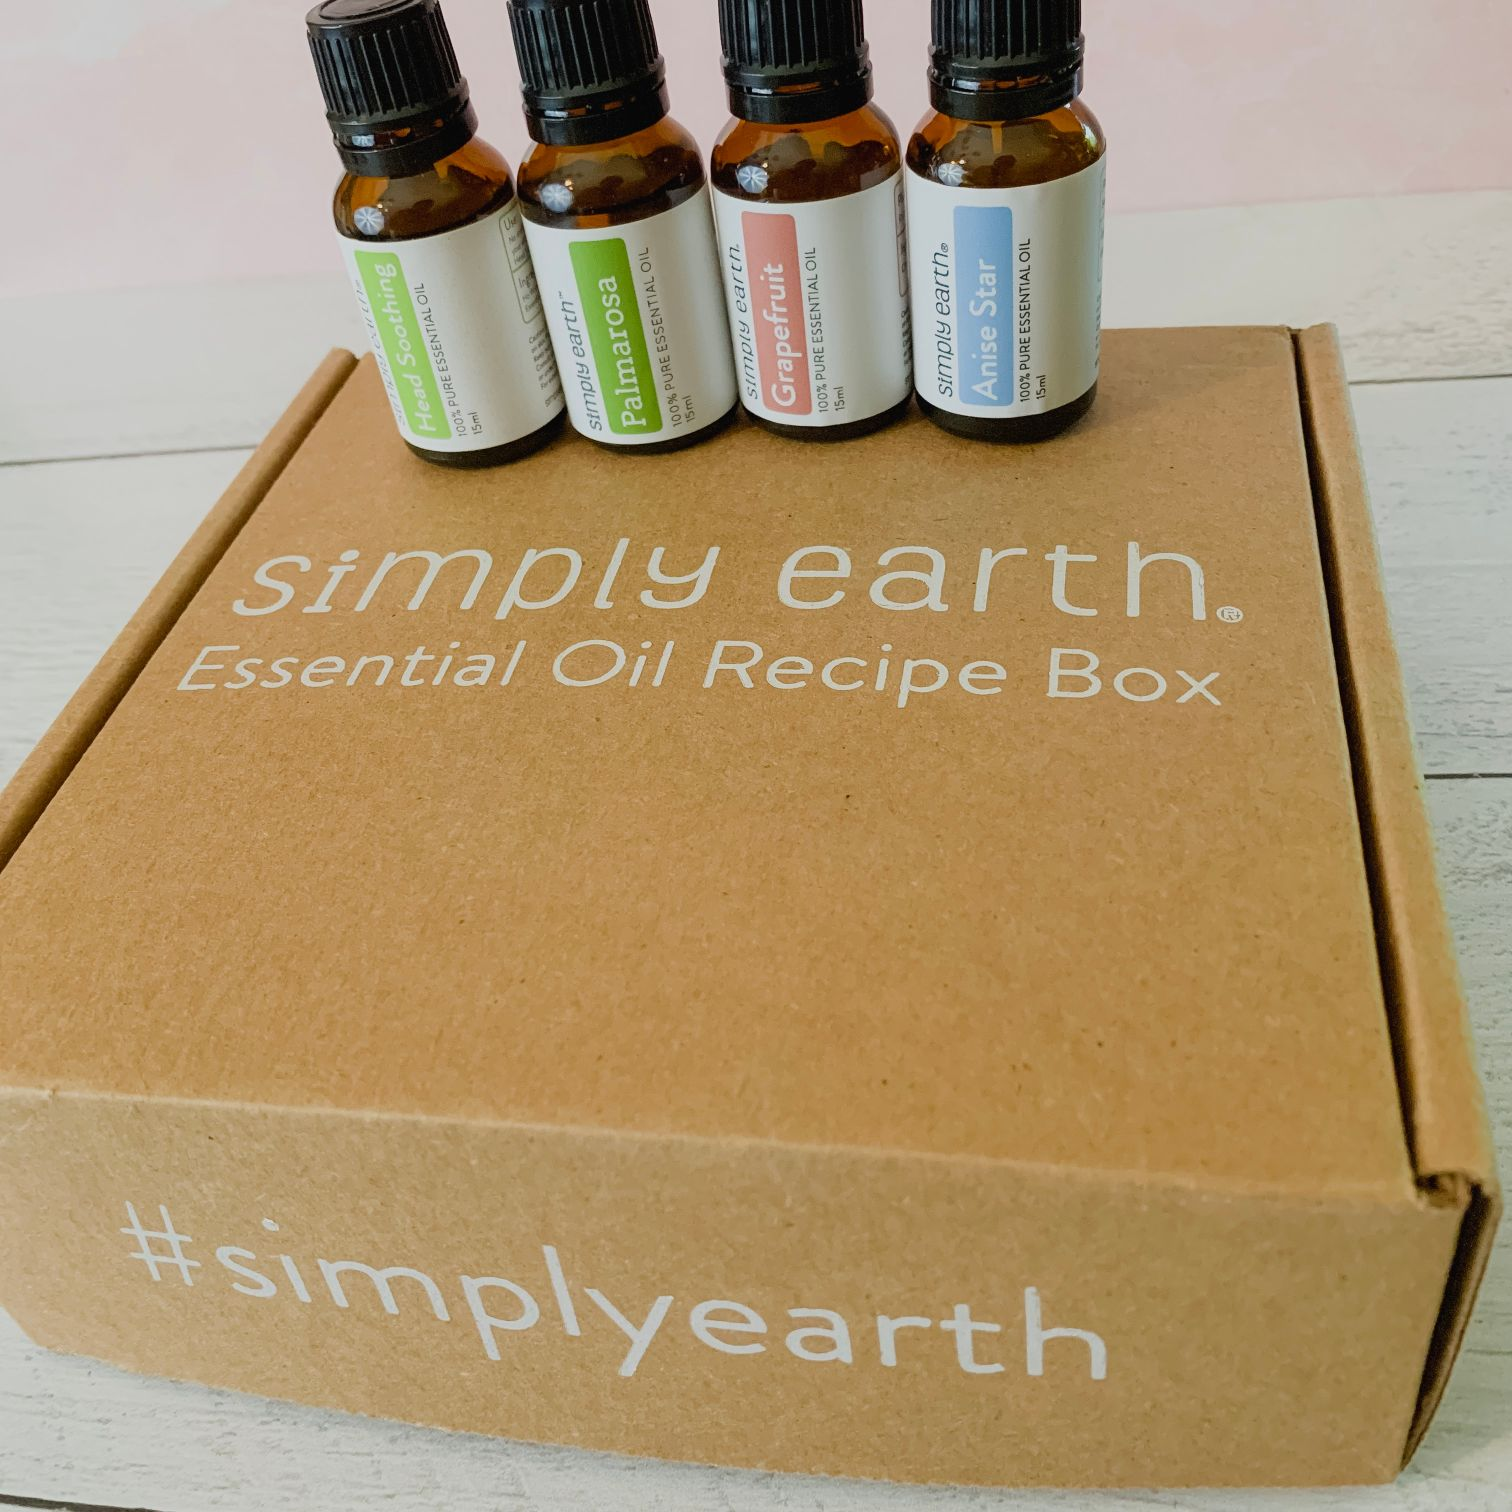 #Affiliate: Finding The Perfect Summer Essential Oils With Simply Earth | Essential oils are great any time of year. Do you want to know the best essential oils for summer? Read my post with Simply Earth for everything you need for a perfect summer and a home that's natural and smells delightful. #EssentialOils #FromSimplyEarth